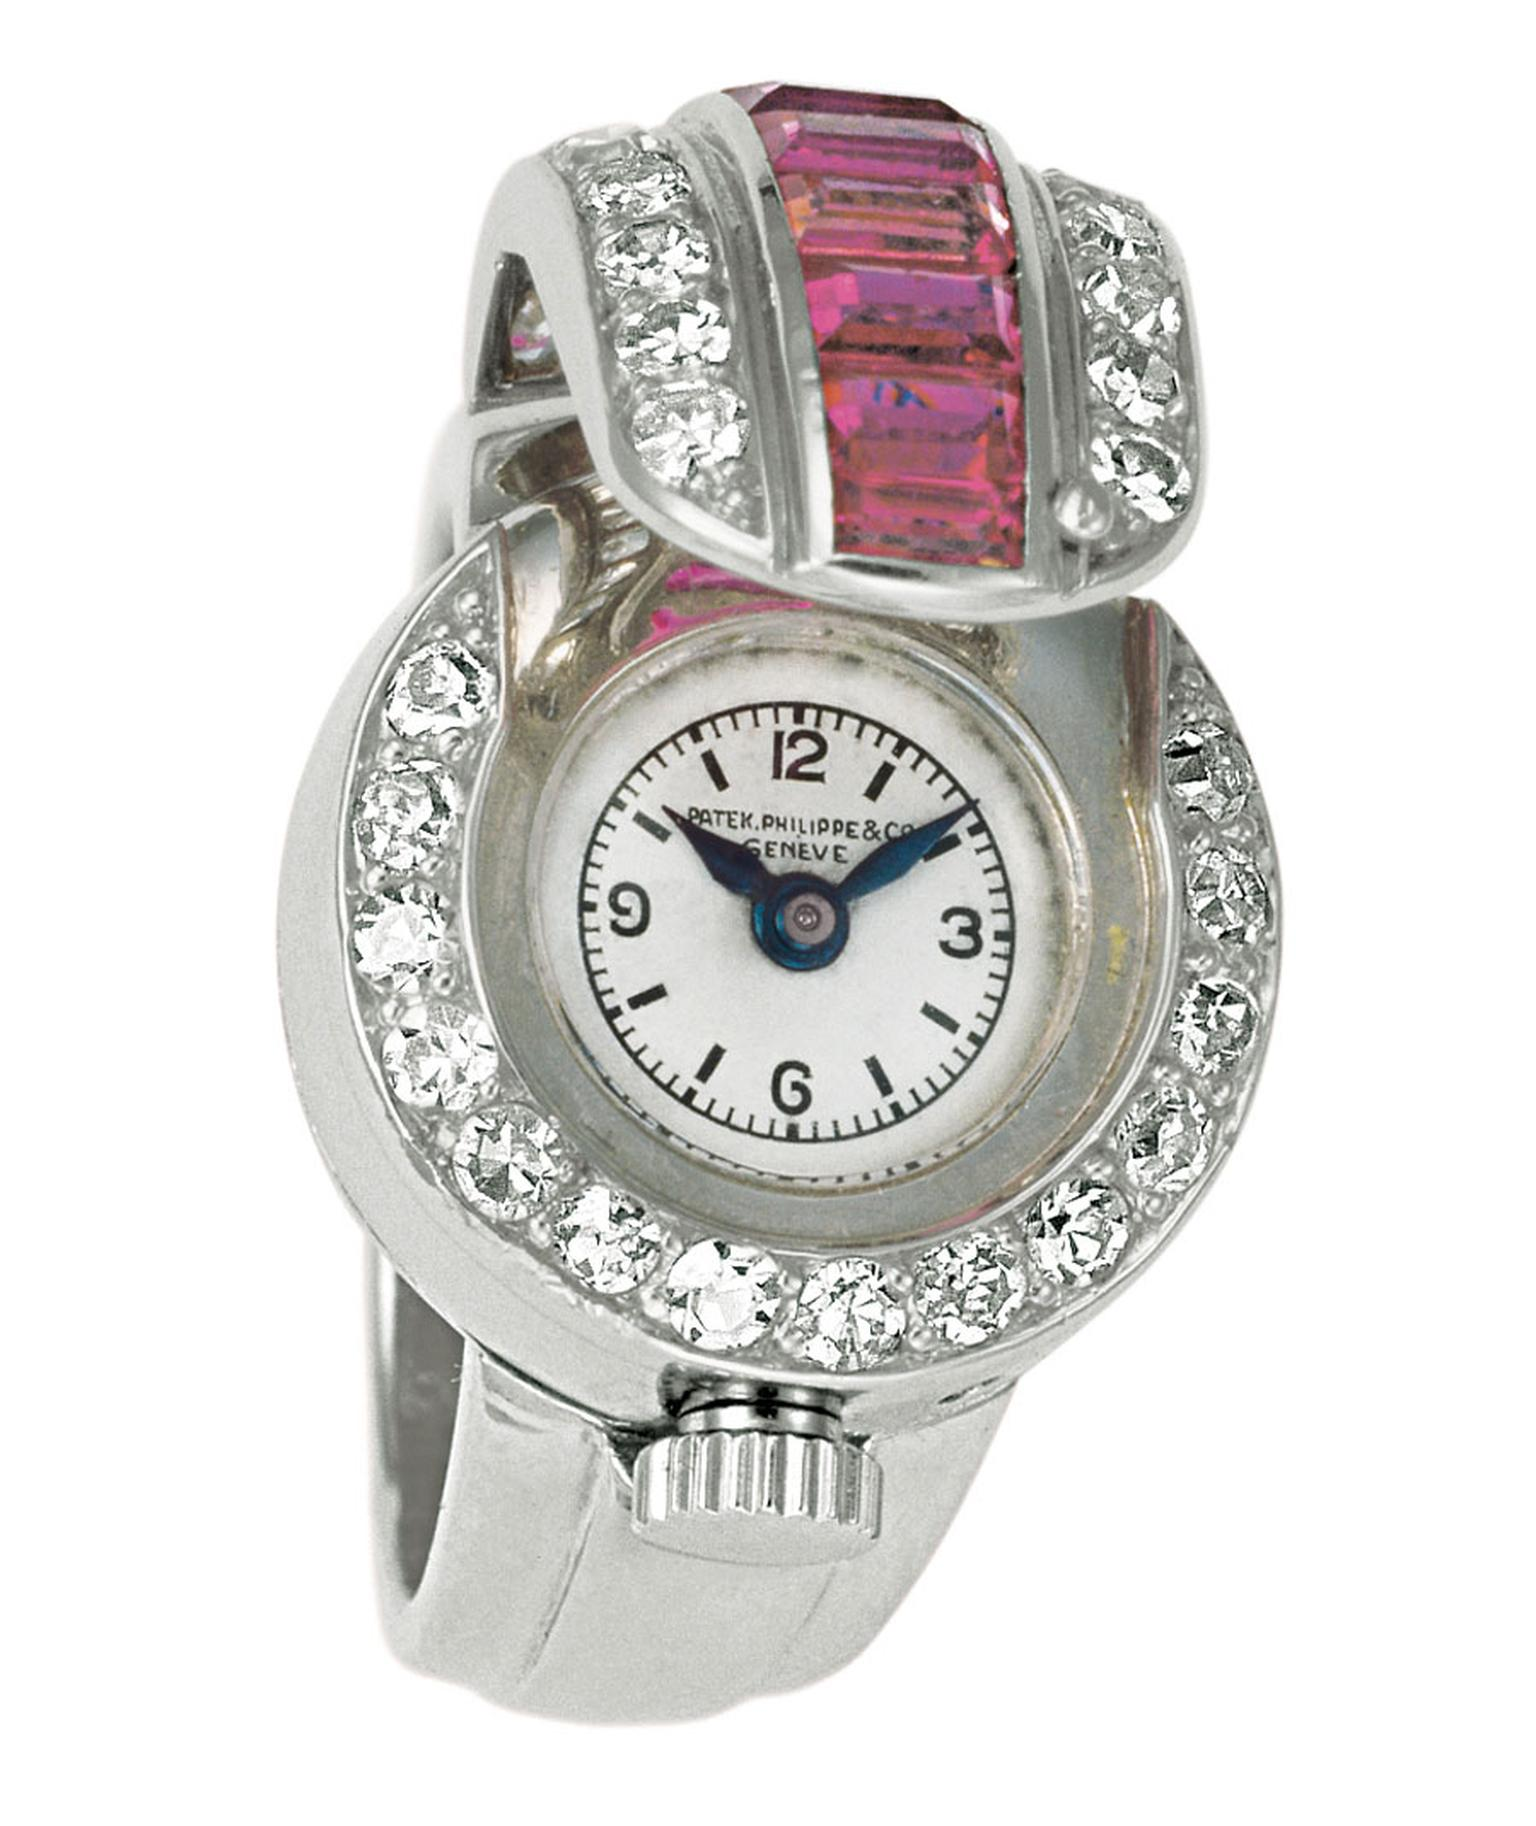 Patek-Philippe-P1516_a_200_collection-1912-1913.jpg